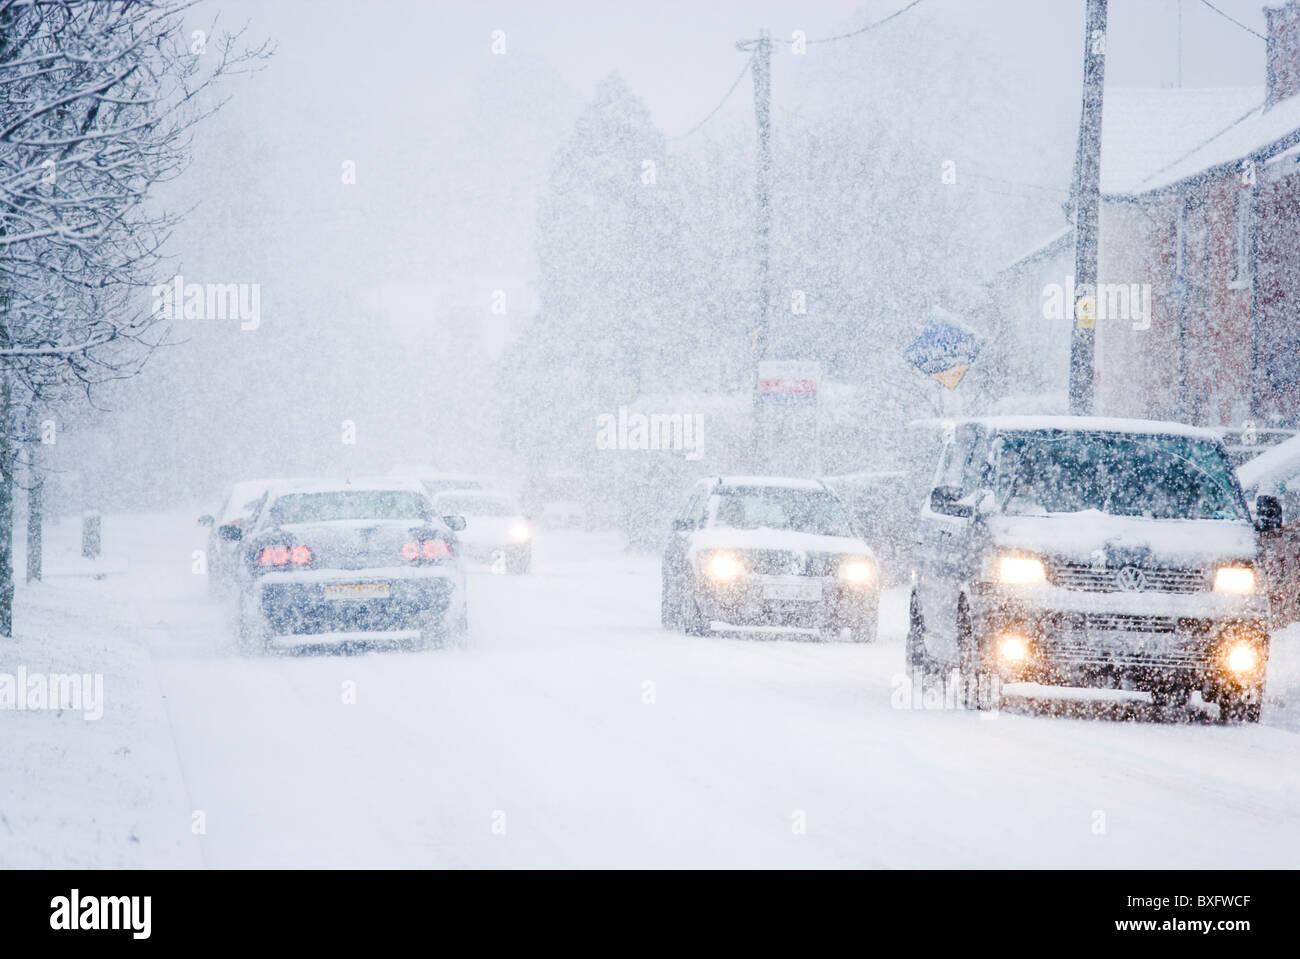 Cars in blizzard. Surrey, UK - Stock Image